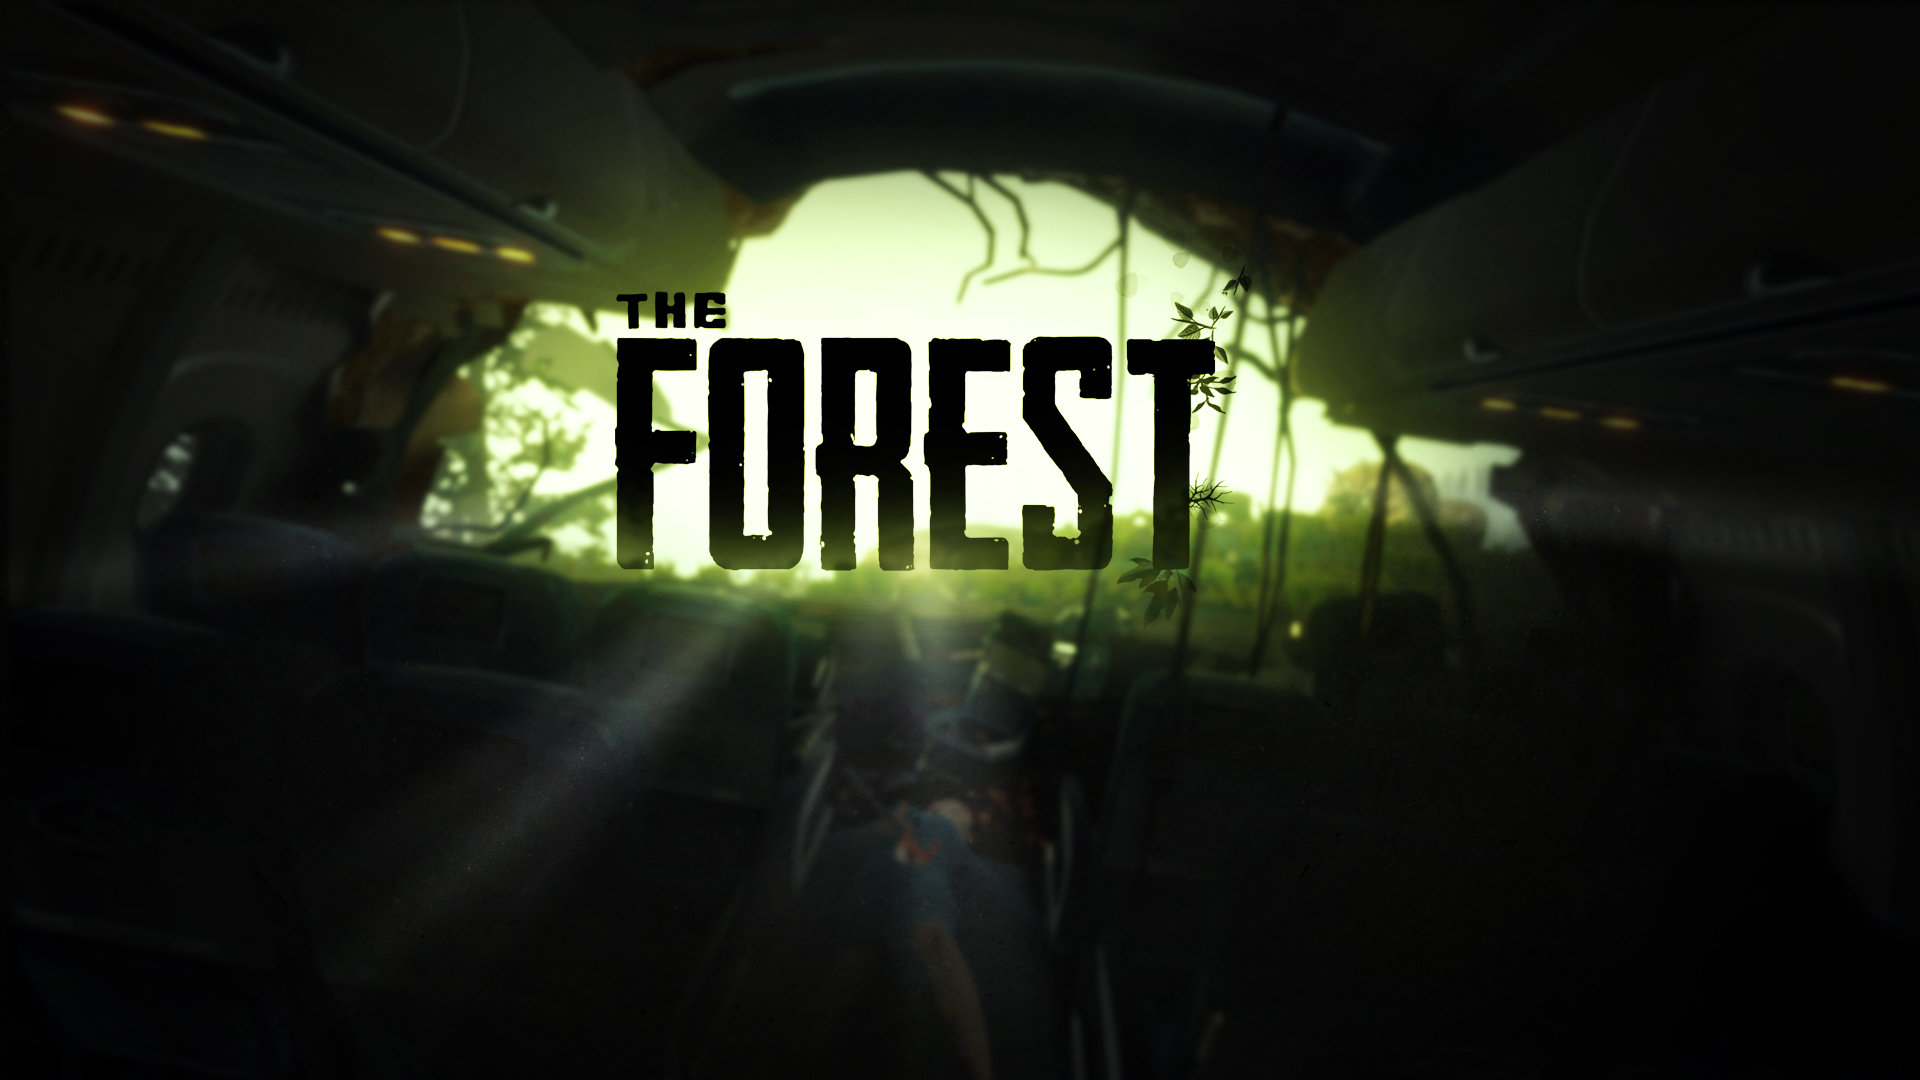 The Forest Wallpapers 1920x1080 Full Hd 1080p Desktop Backgrounds